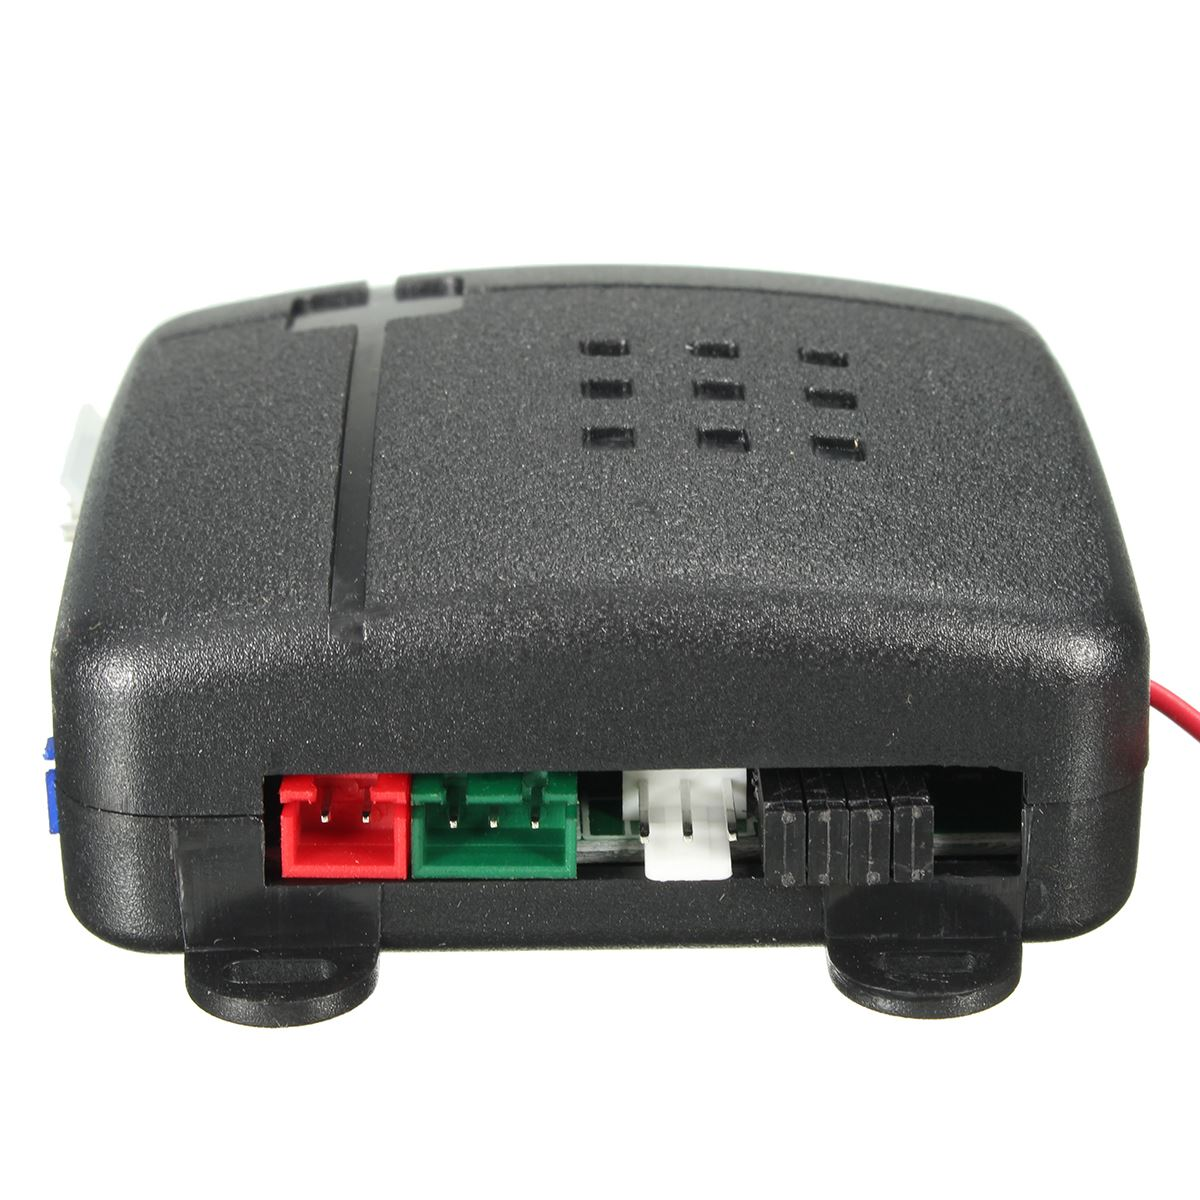 LB -100D LED Universal One-Way Smart Anti-Theft Programmable Car Alarm System